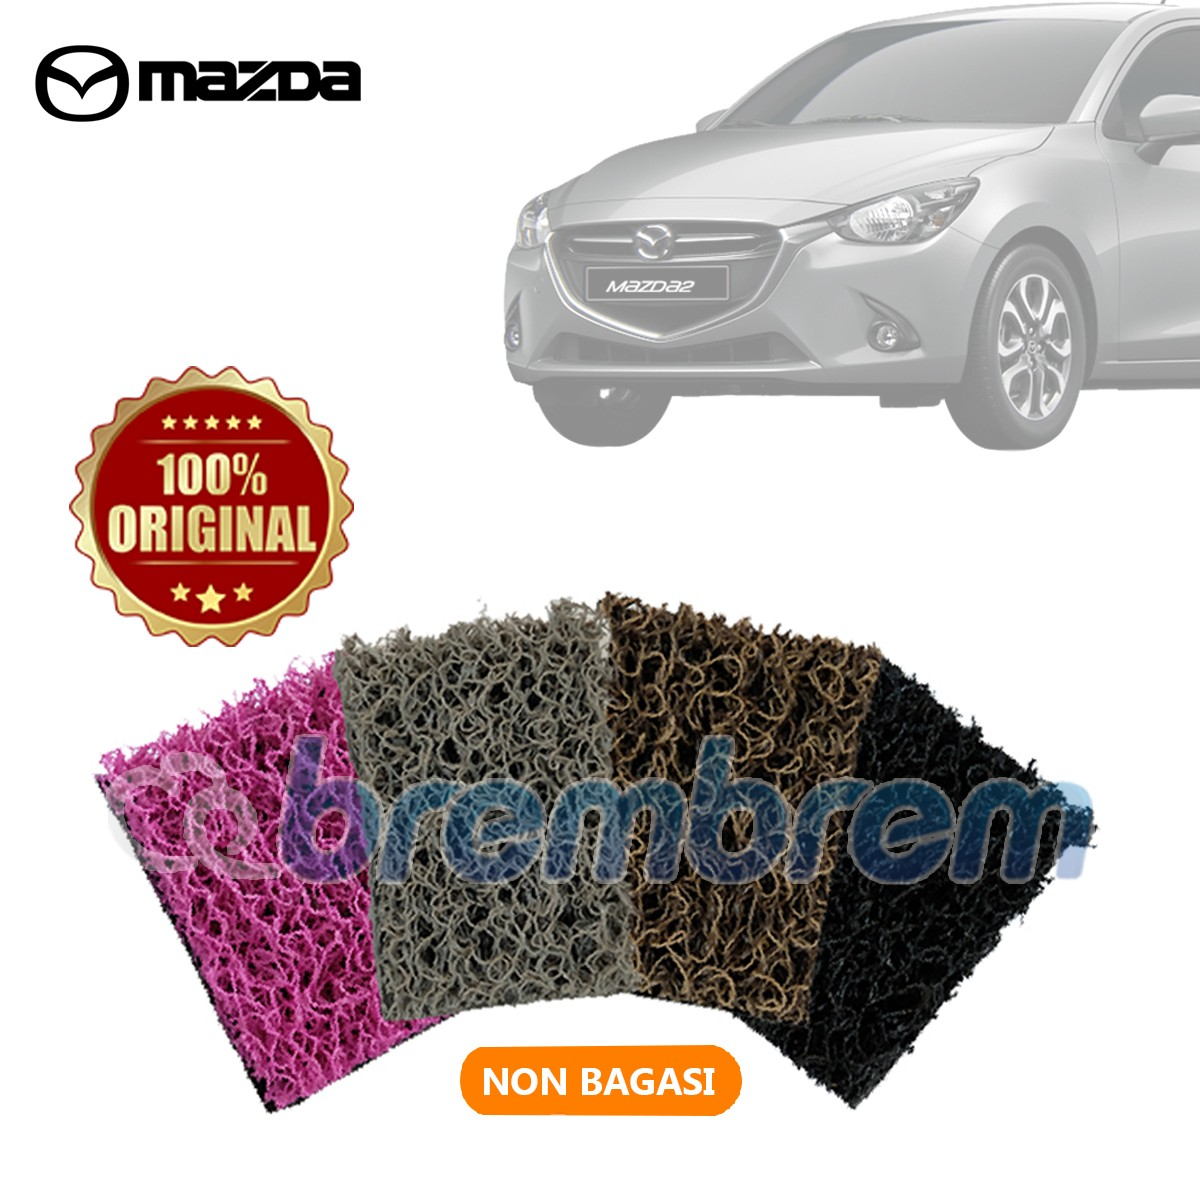 KARPET COMFORT DELUXE NON BAGASI ALL NEW MAZDA 2